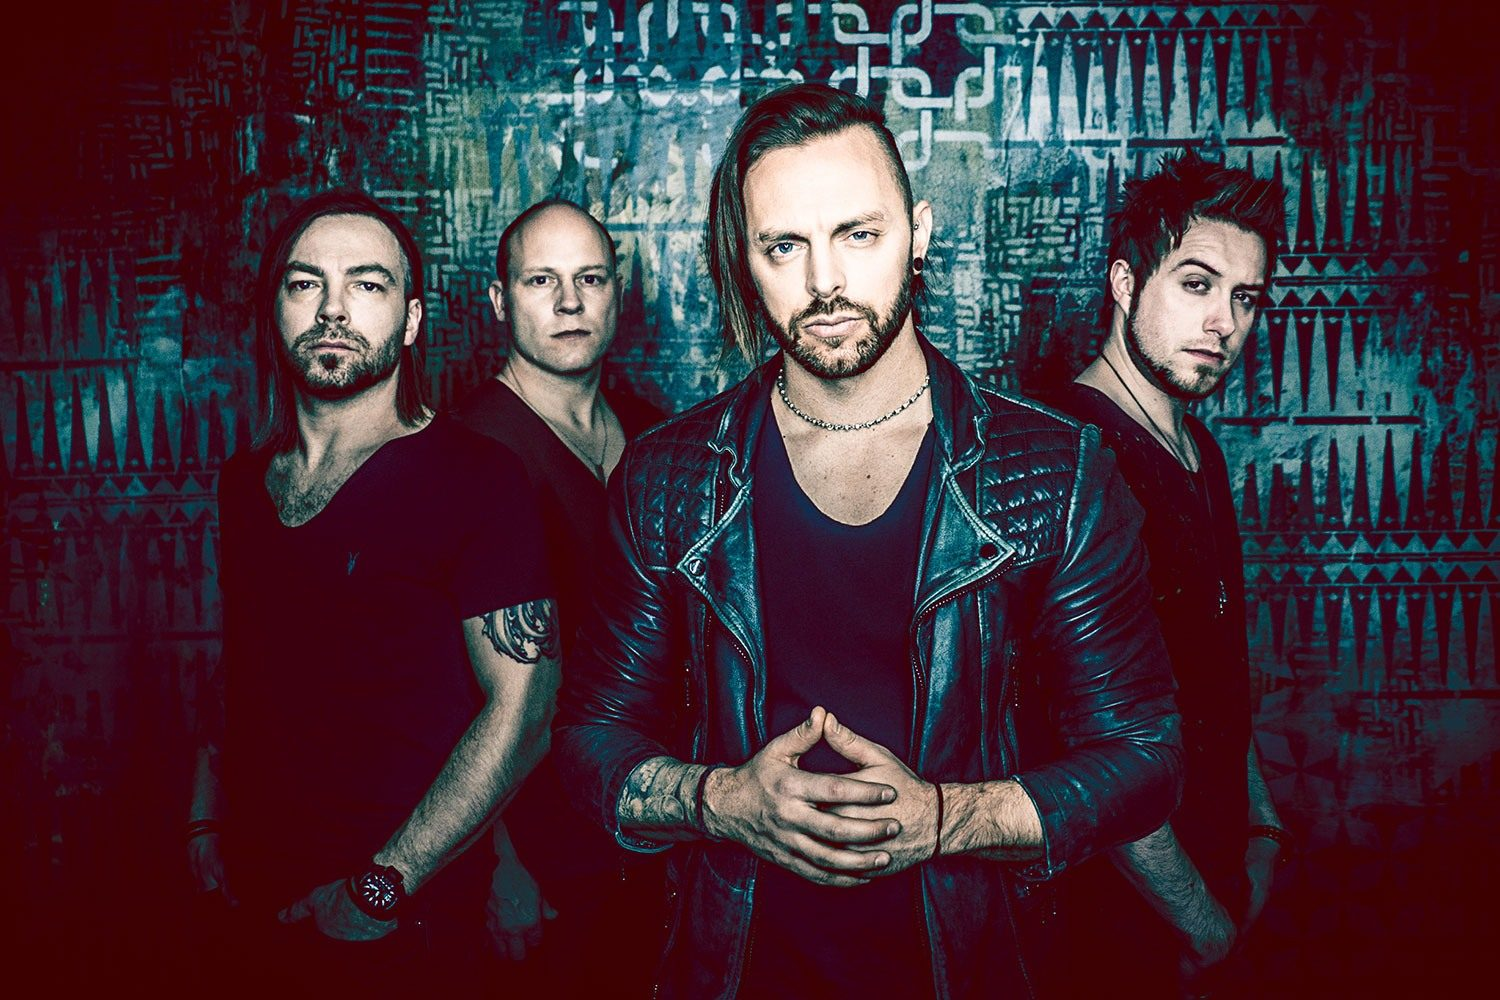 Check out Bullet For My Valentine's new album 'Gravity' streaming in full